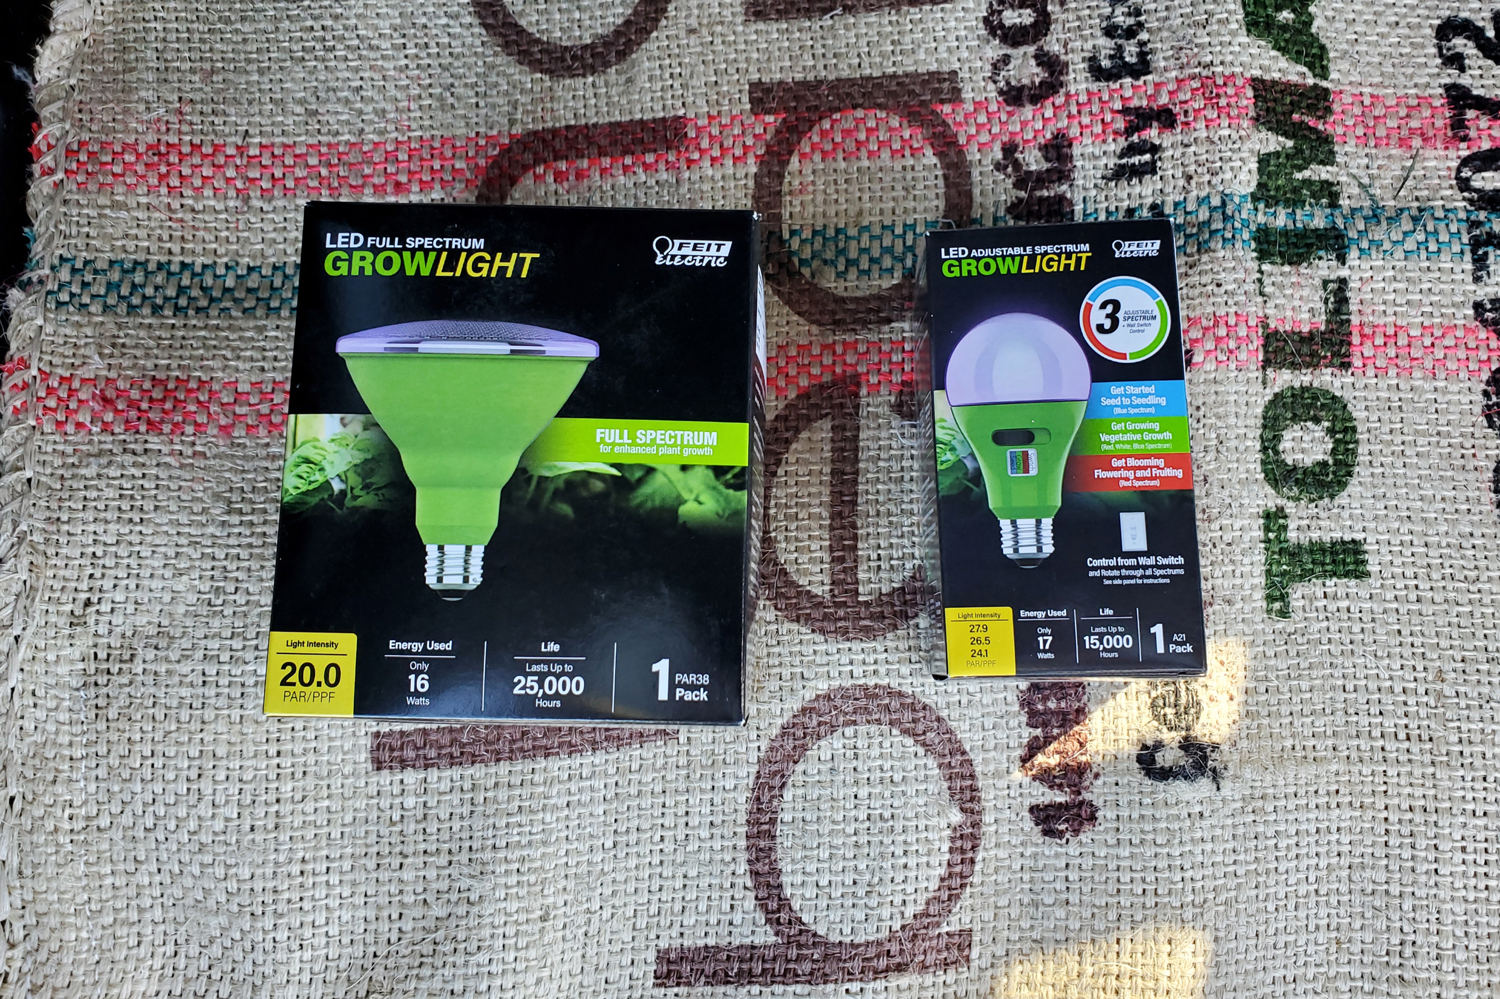 Two LED grow lights - one full spectrum and one adjustable